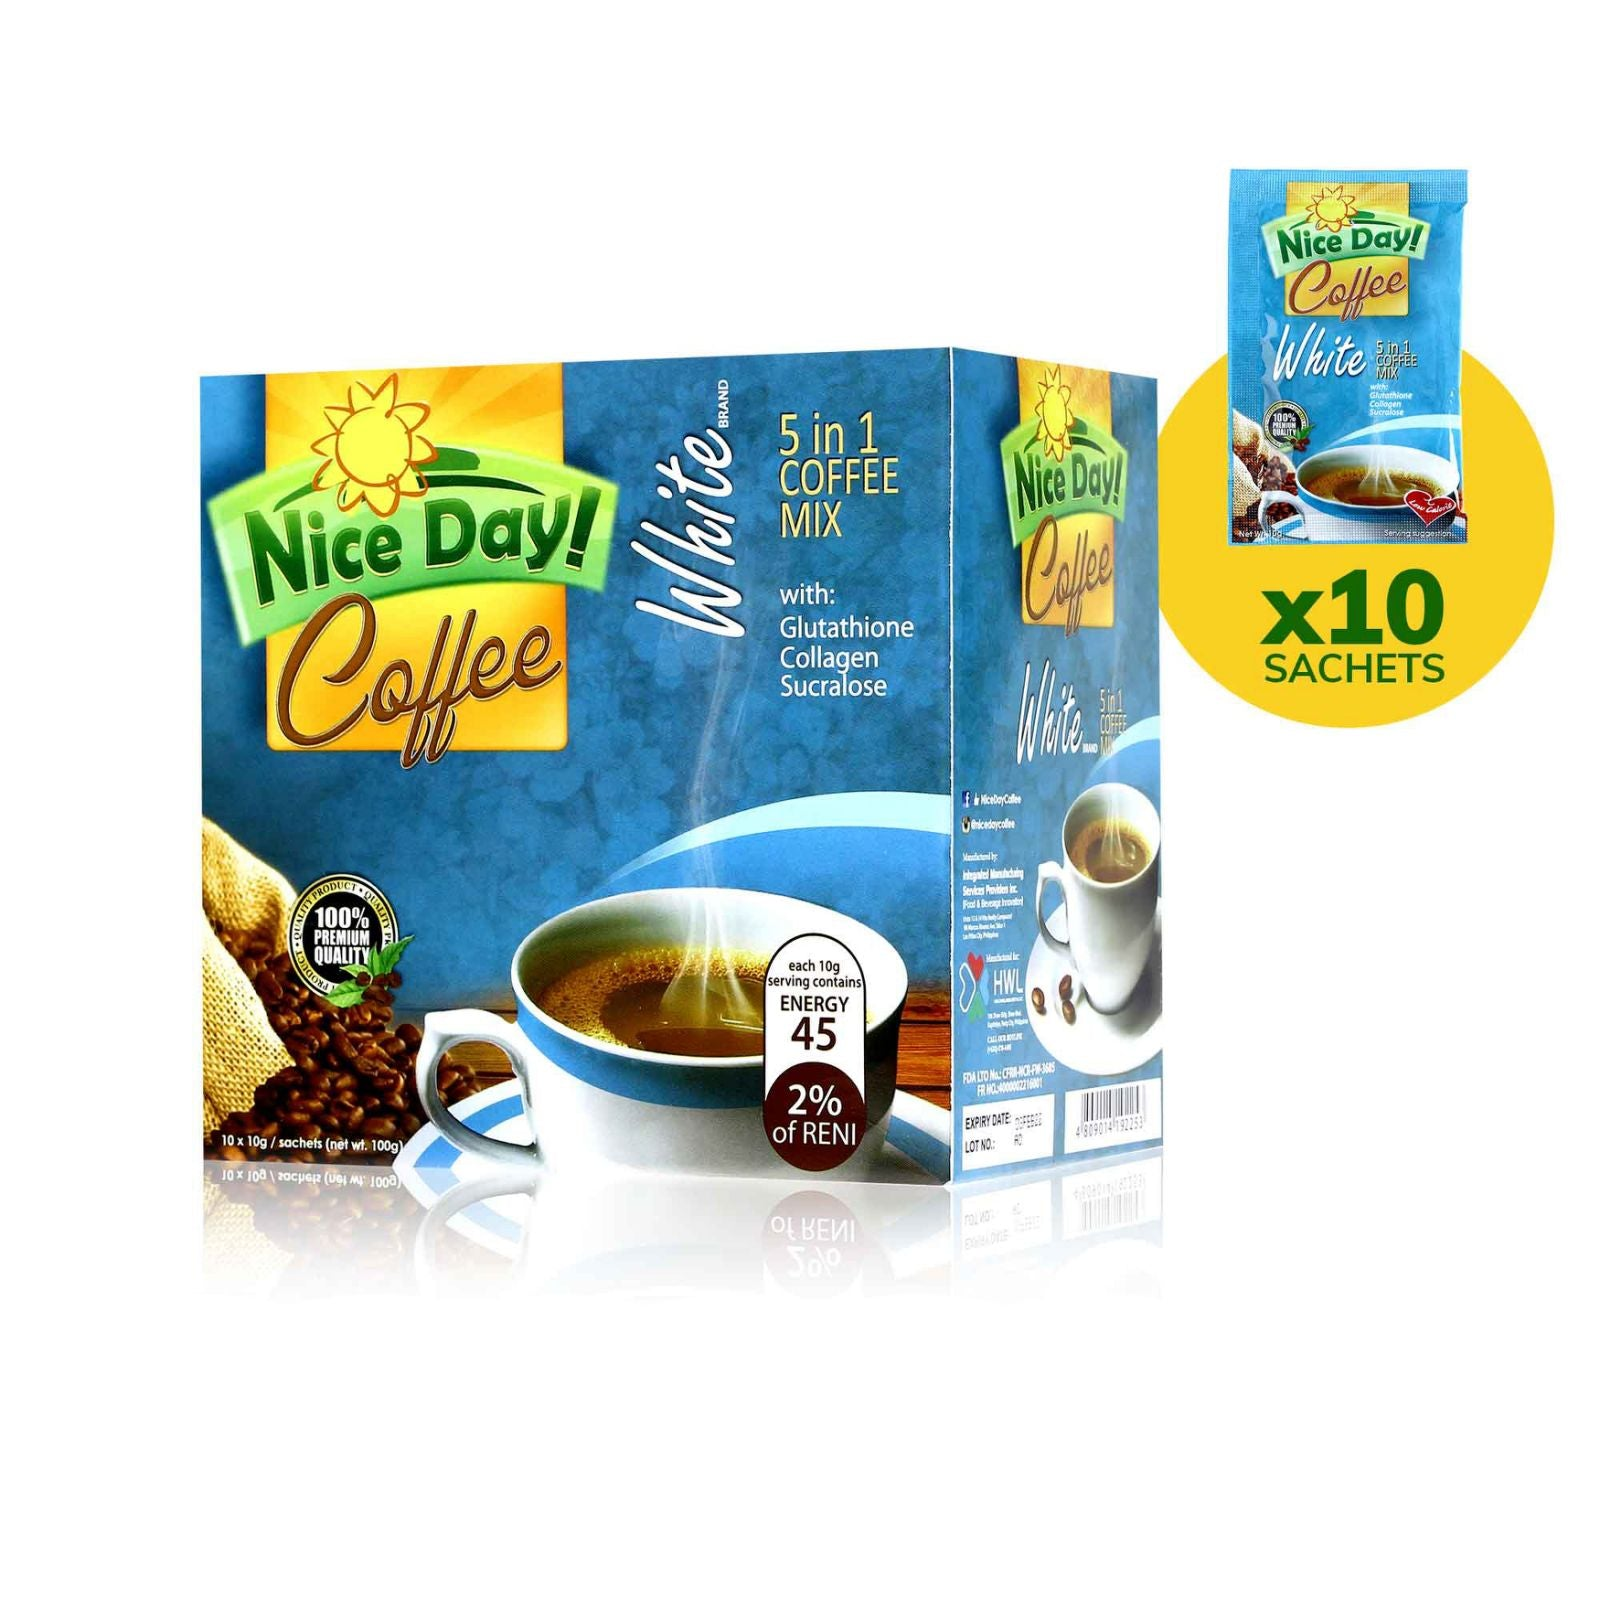 Nice Day Coffee Whitening Coffee 10 Sachets